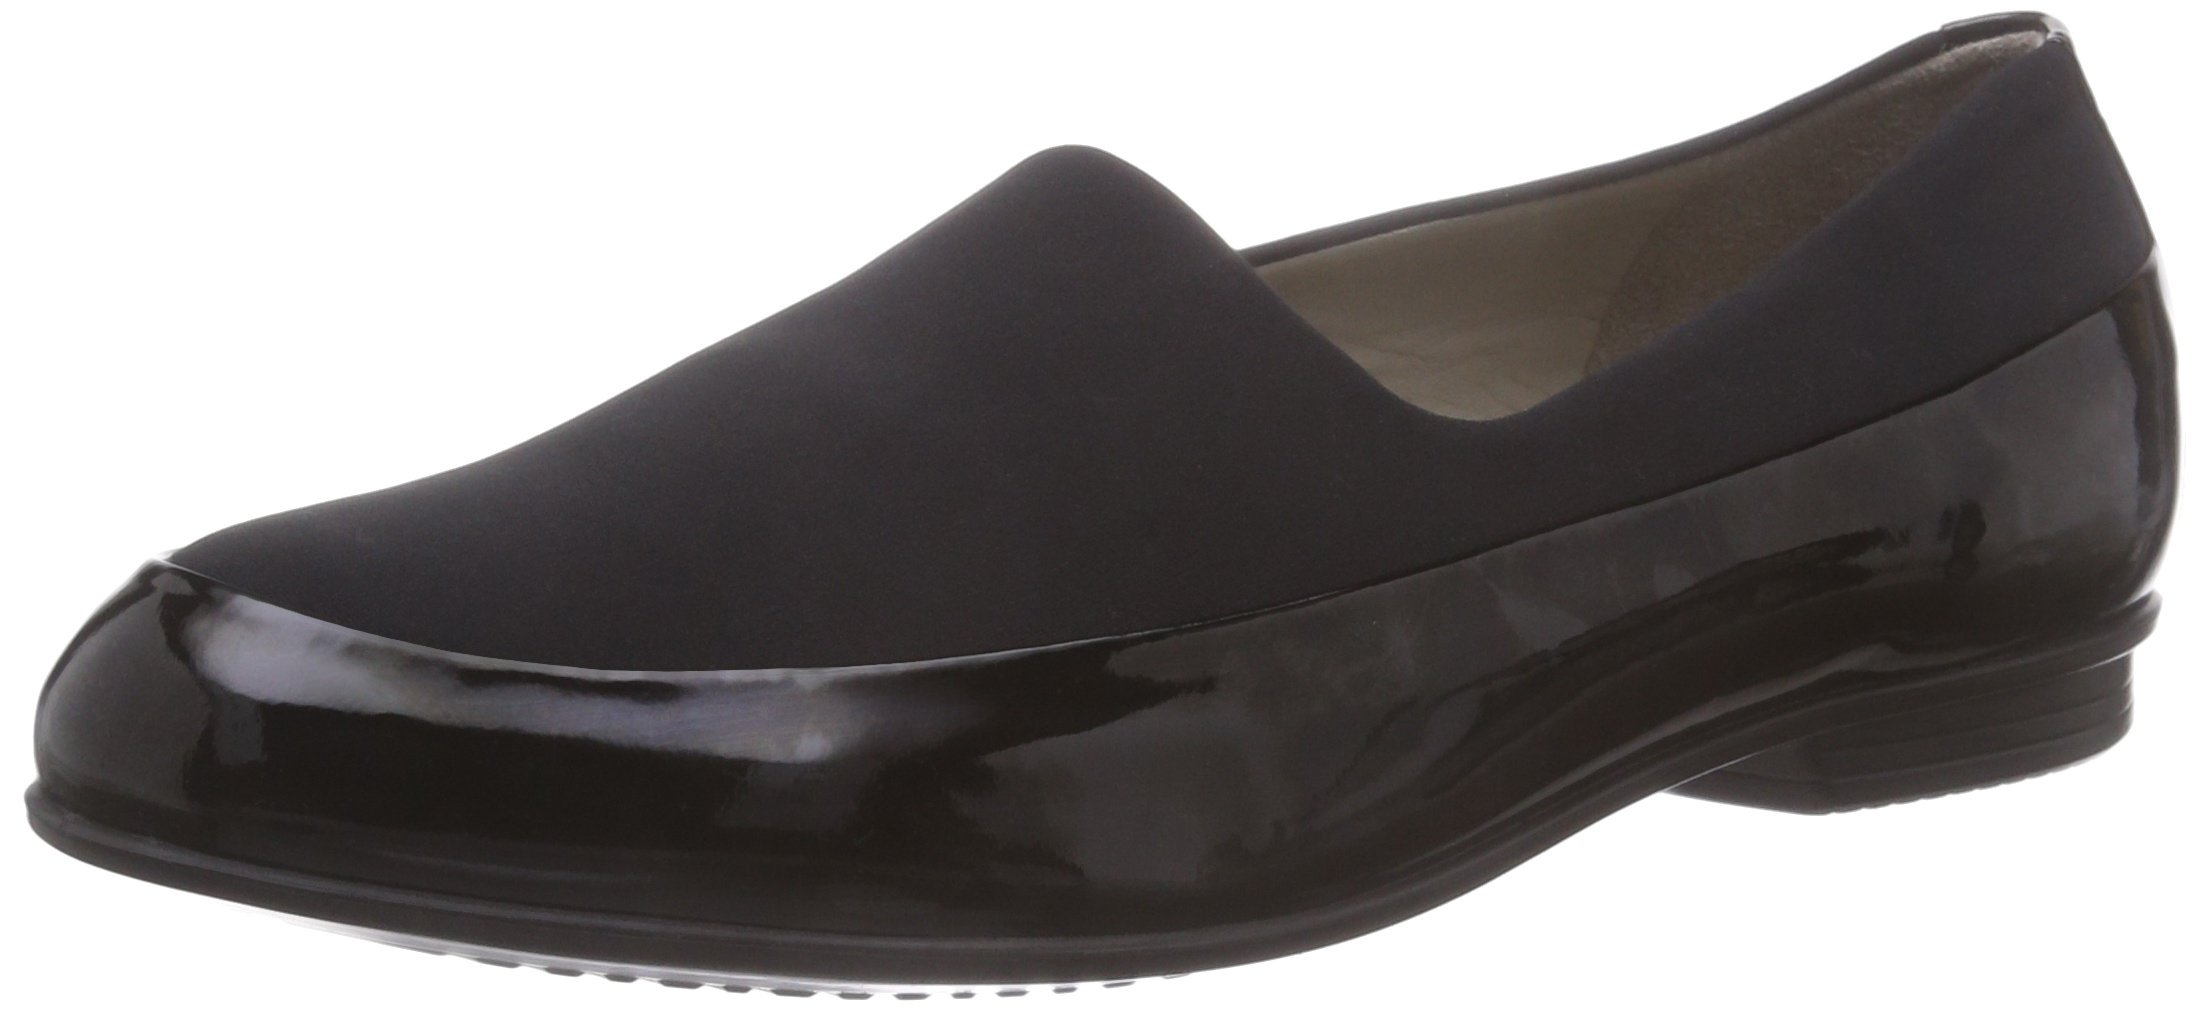 Ecco Footwear Womens Touch Ballerina Stretch Flat, Black, 38 EU/7-7.5 M US